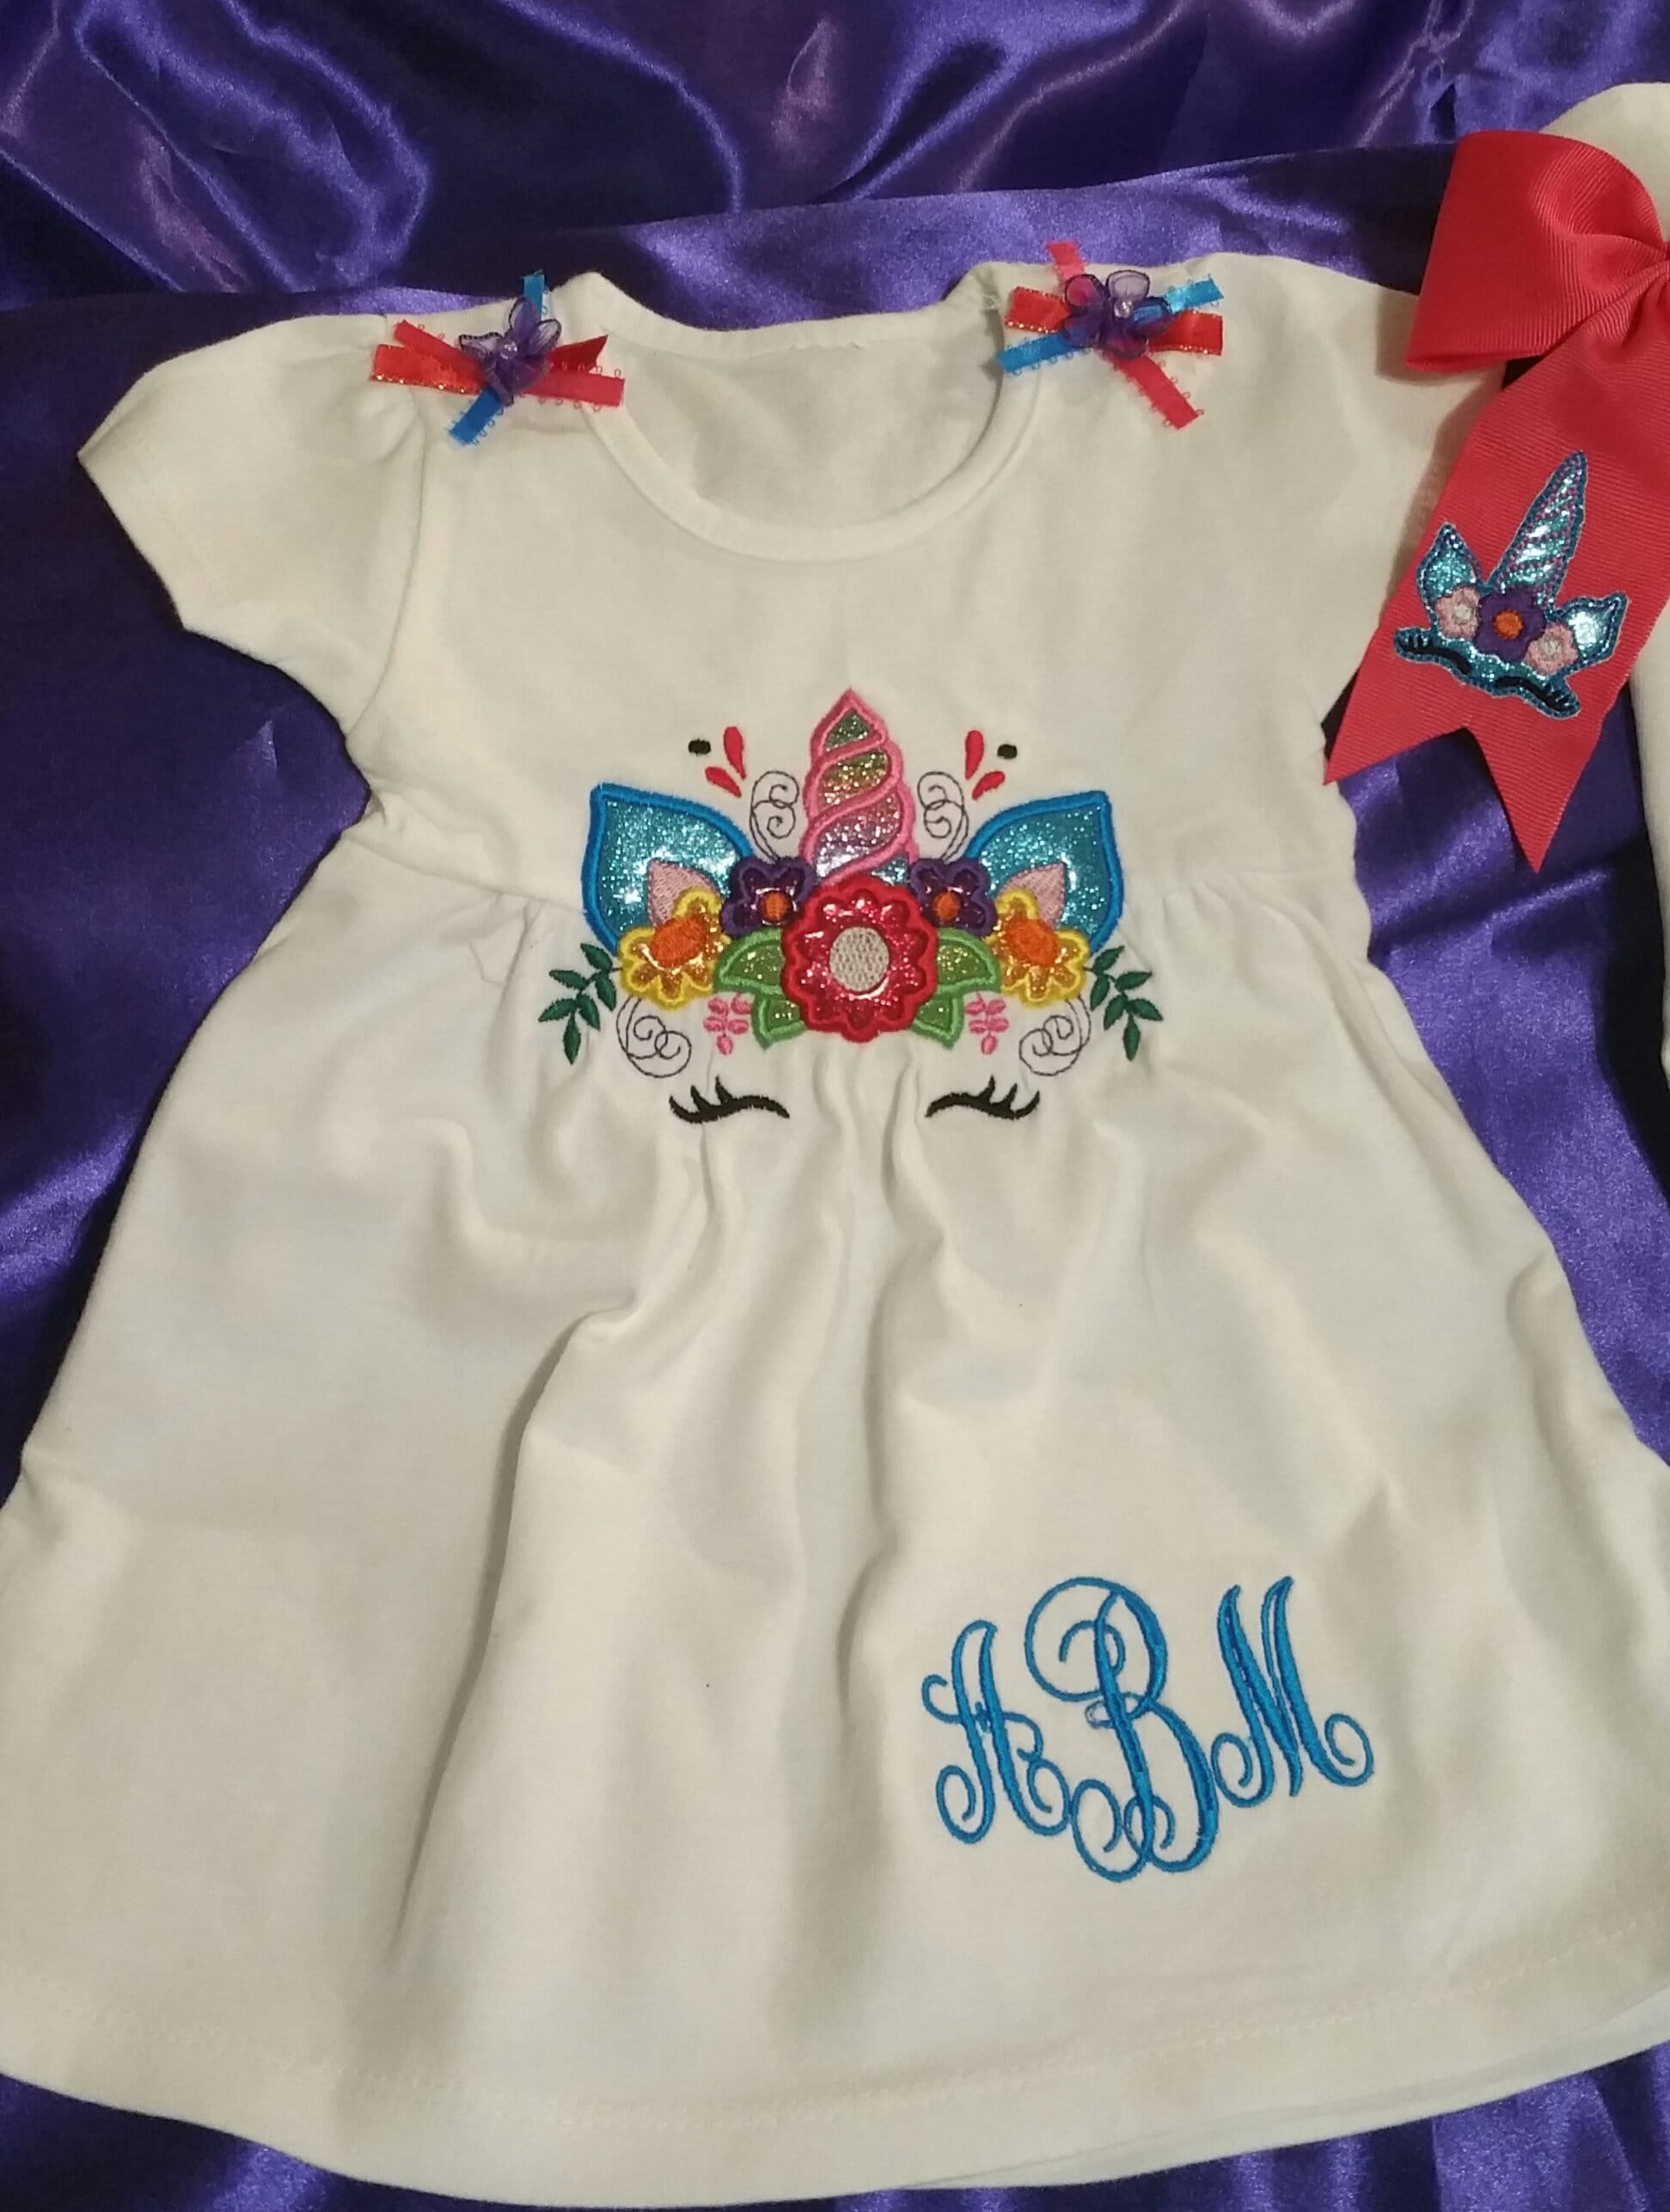 Unicorn Shirts In Embroidery And Glitter Vinyl For Kids To Etsy